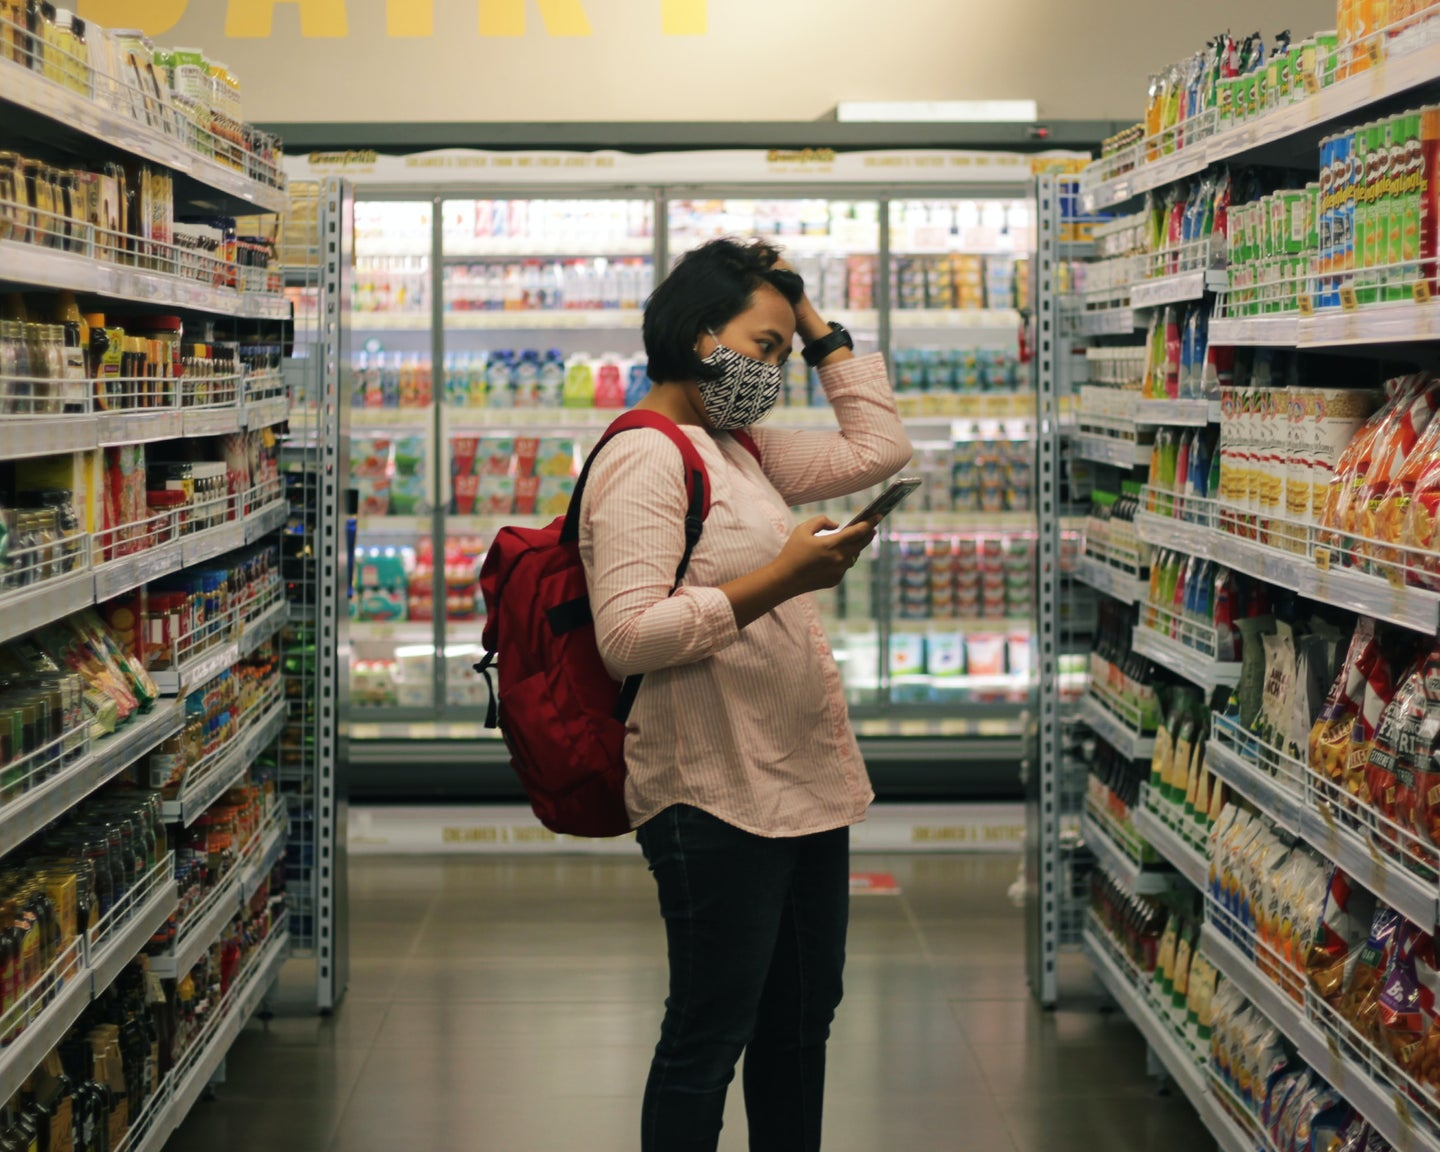 A dark haired person wearing a black and white patterned mask with a red backpack stands in a grocery store aisle, holding up a smartphone in one hand and running their other hand through their hair. They are looking intently at an array of colorful packaged foods.